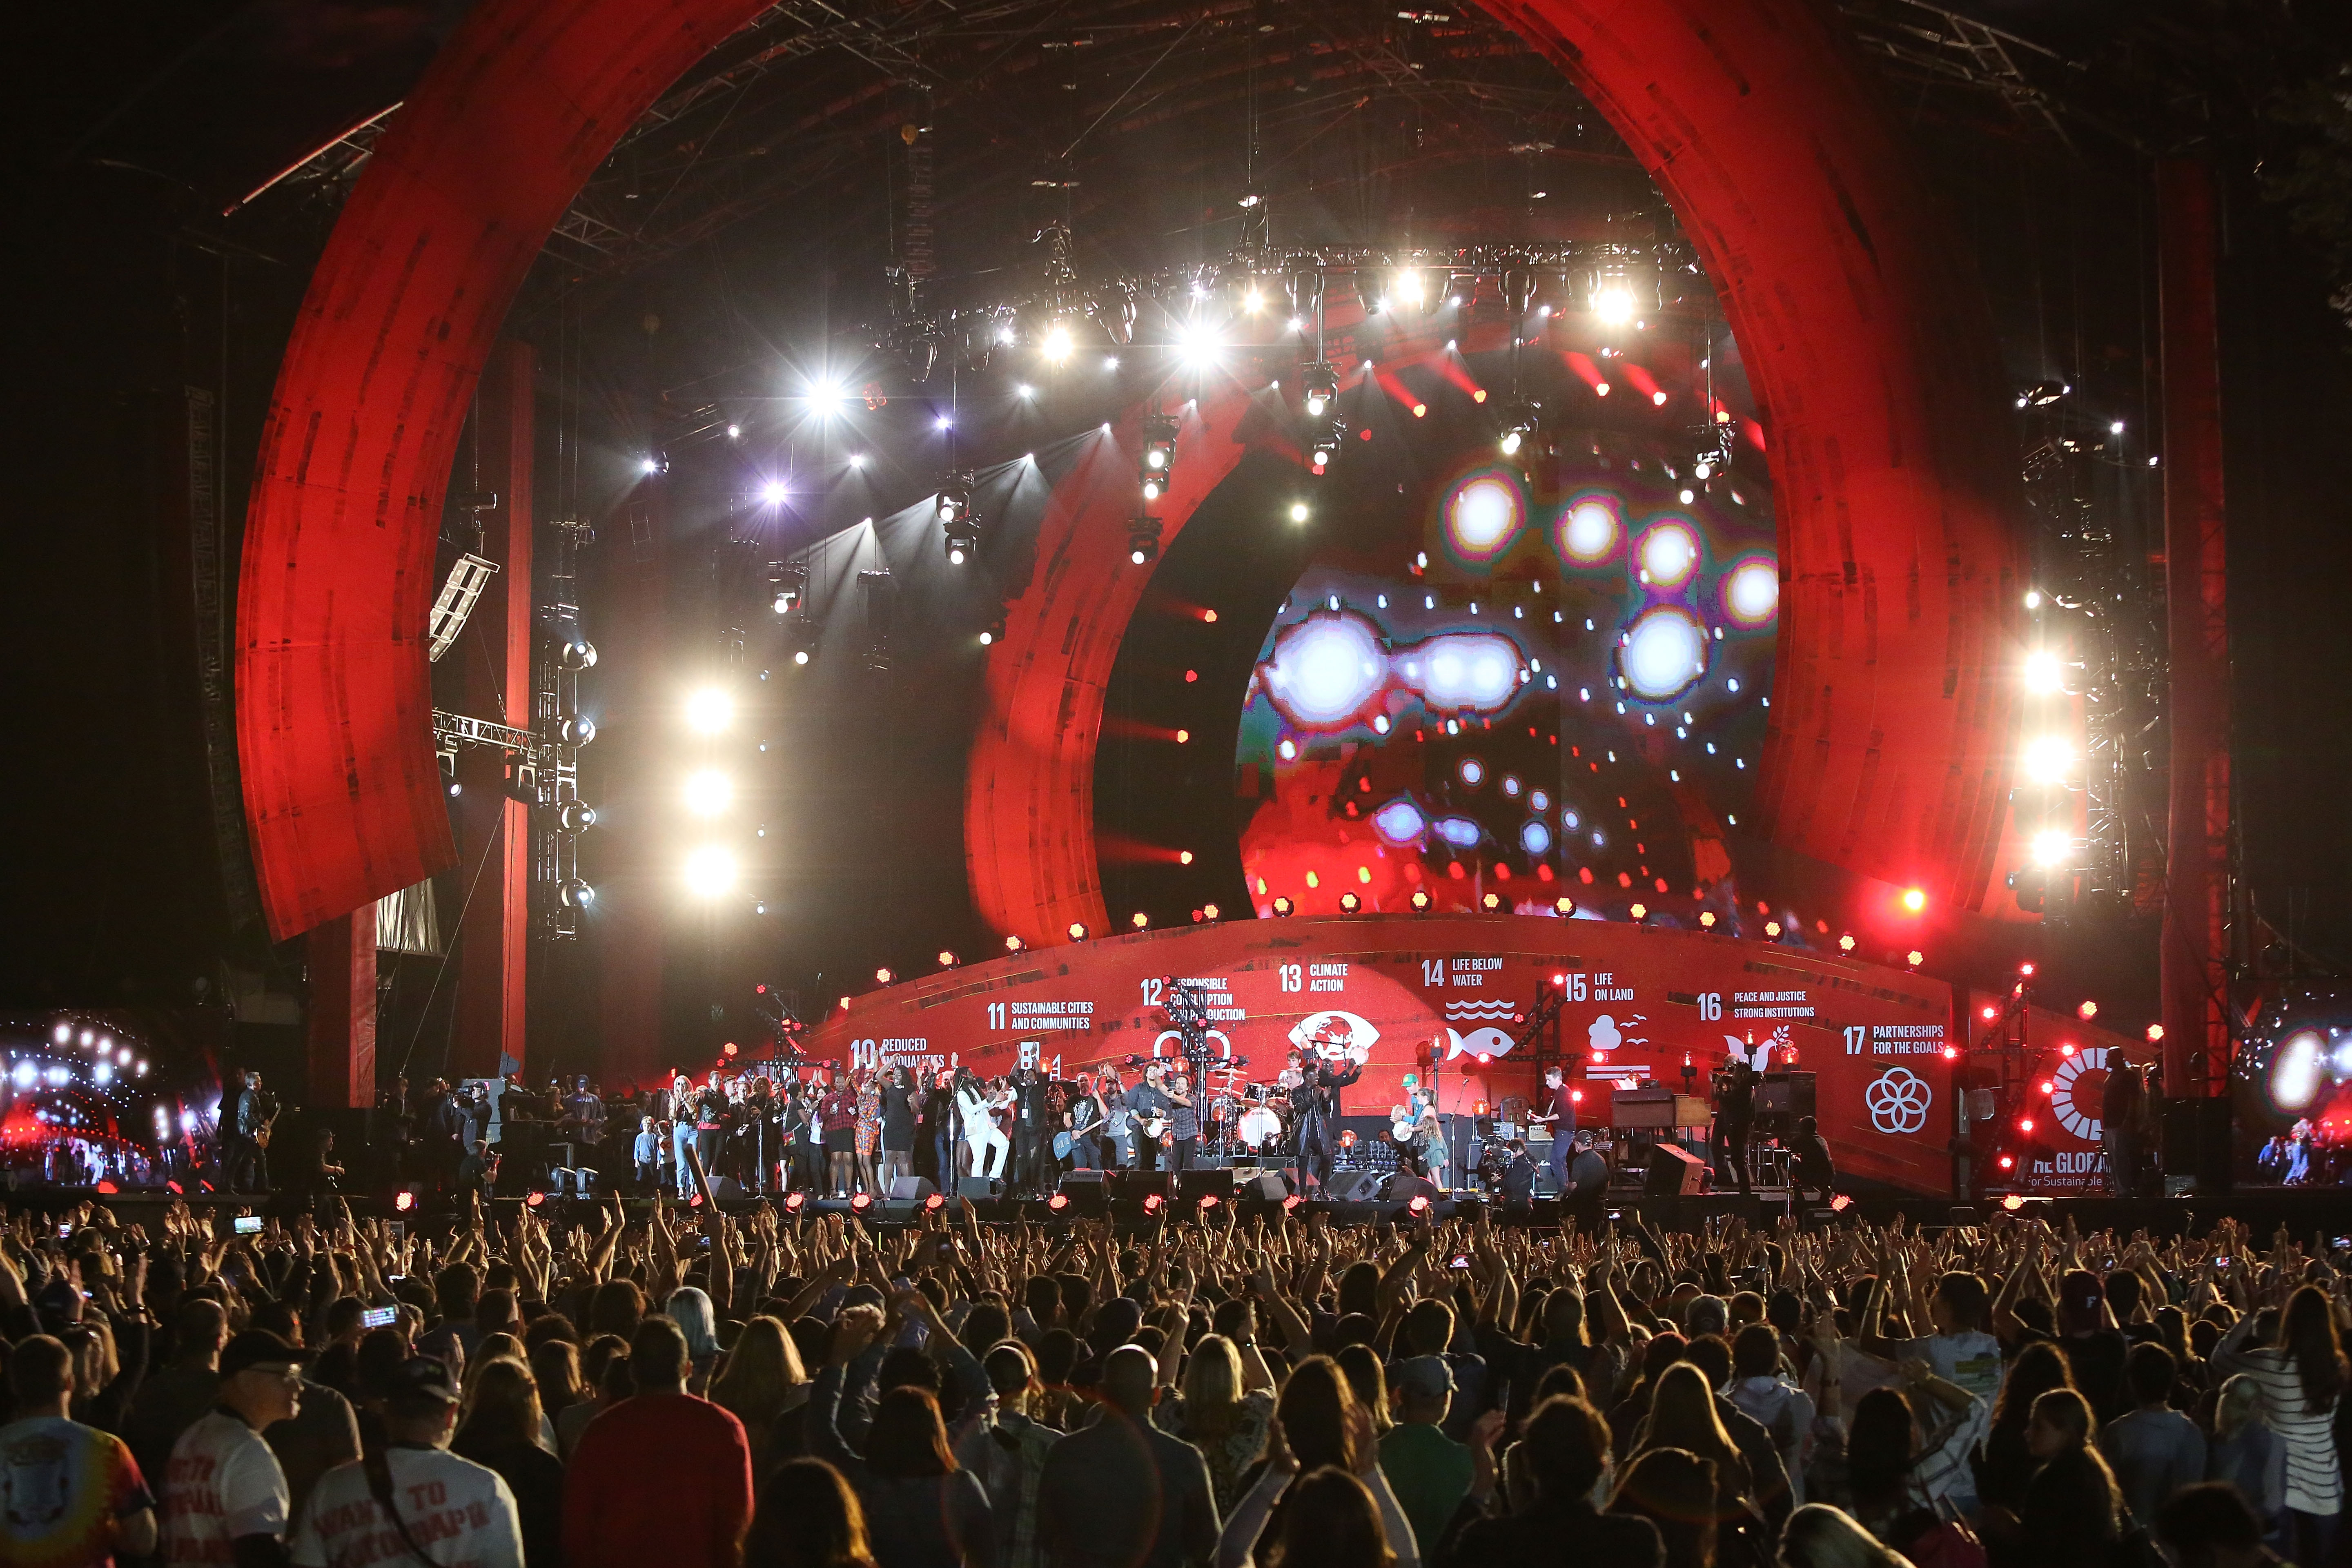 Pearl Jam performs  Rockin in the Free World  to close the 2015 Global Citizen Festival at Central Park on September 26, 2015 in New York City.